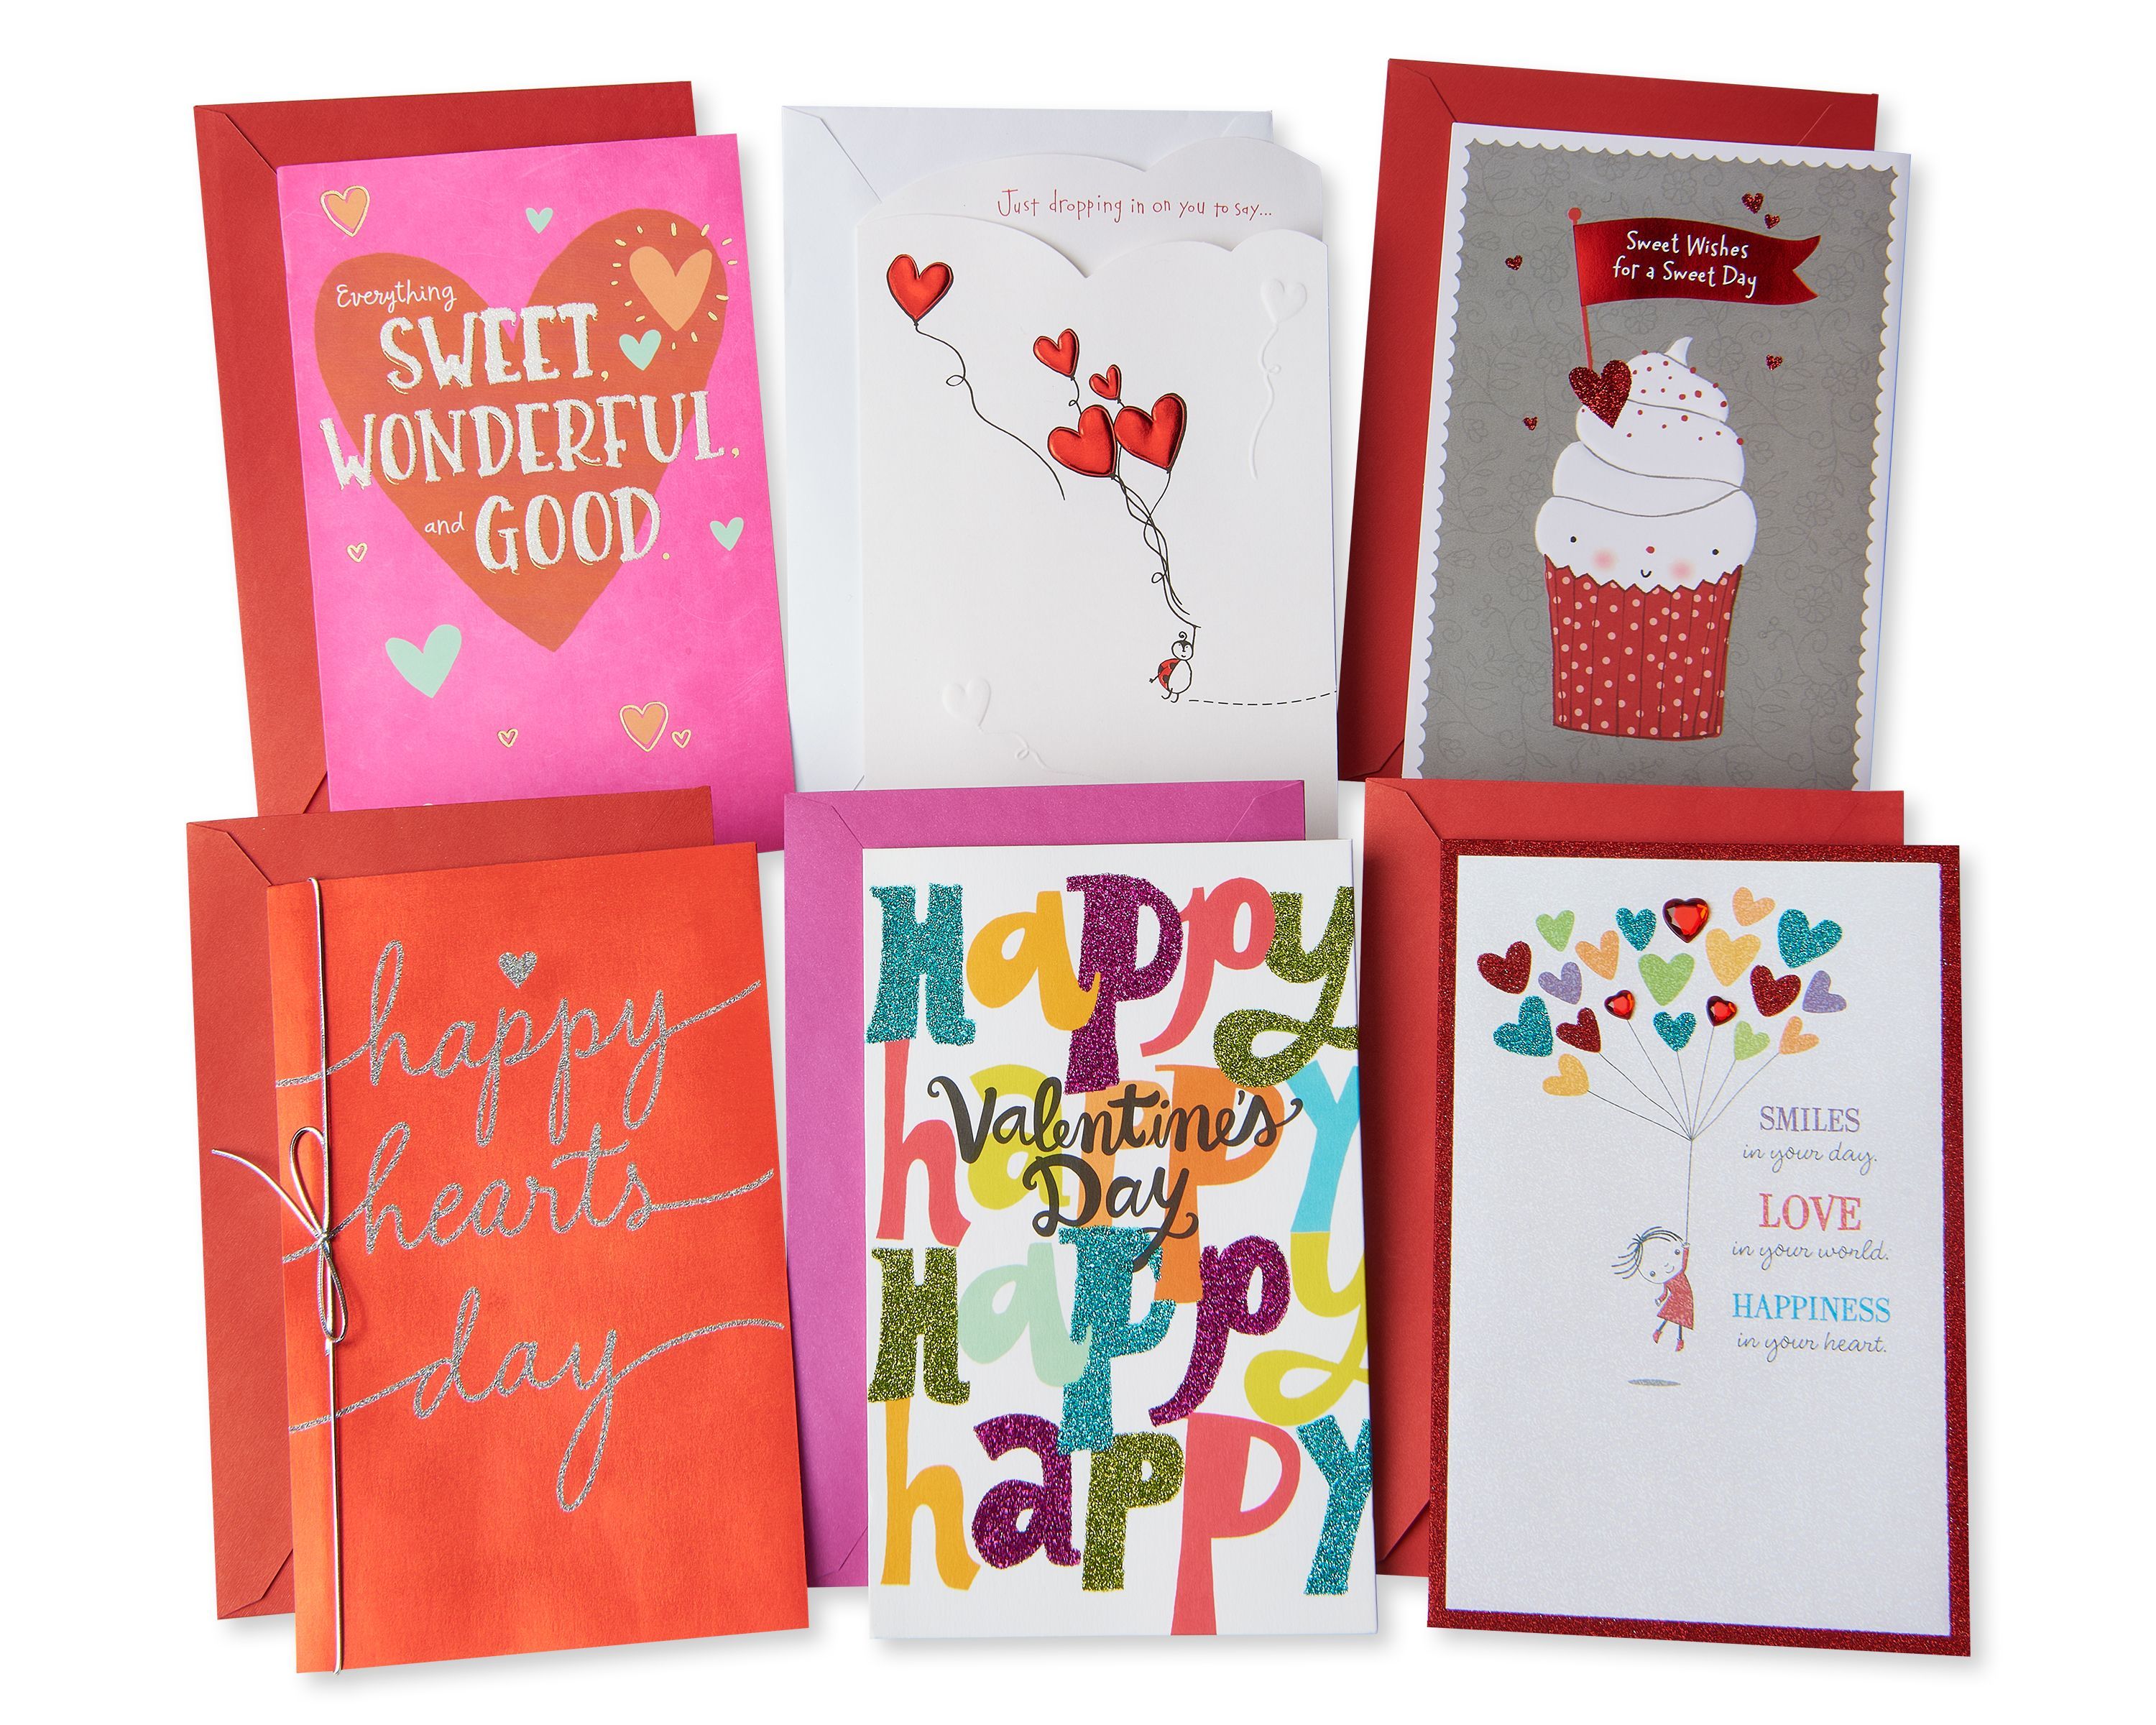 Love Card Handmade Greeting Card Love is in the Air Variety Card Pack Valentines Days I Love You Card